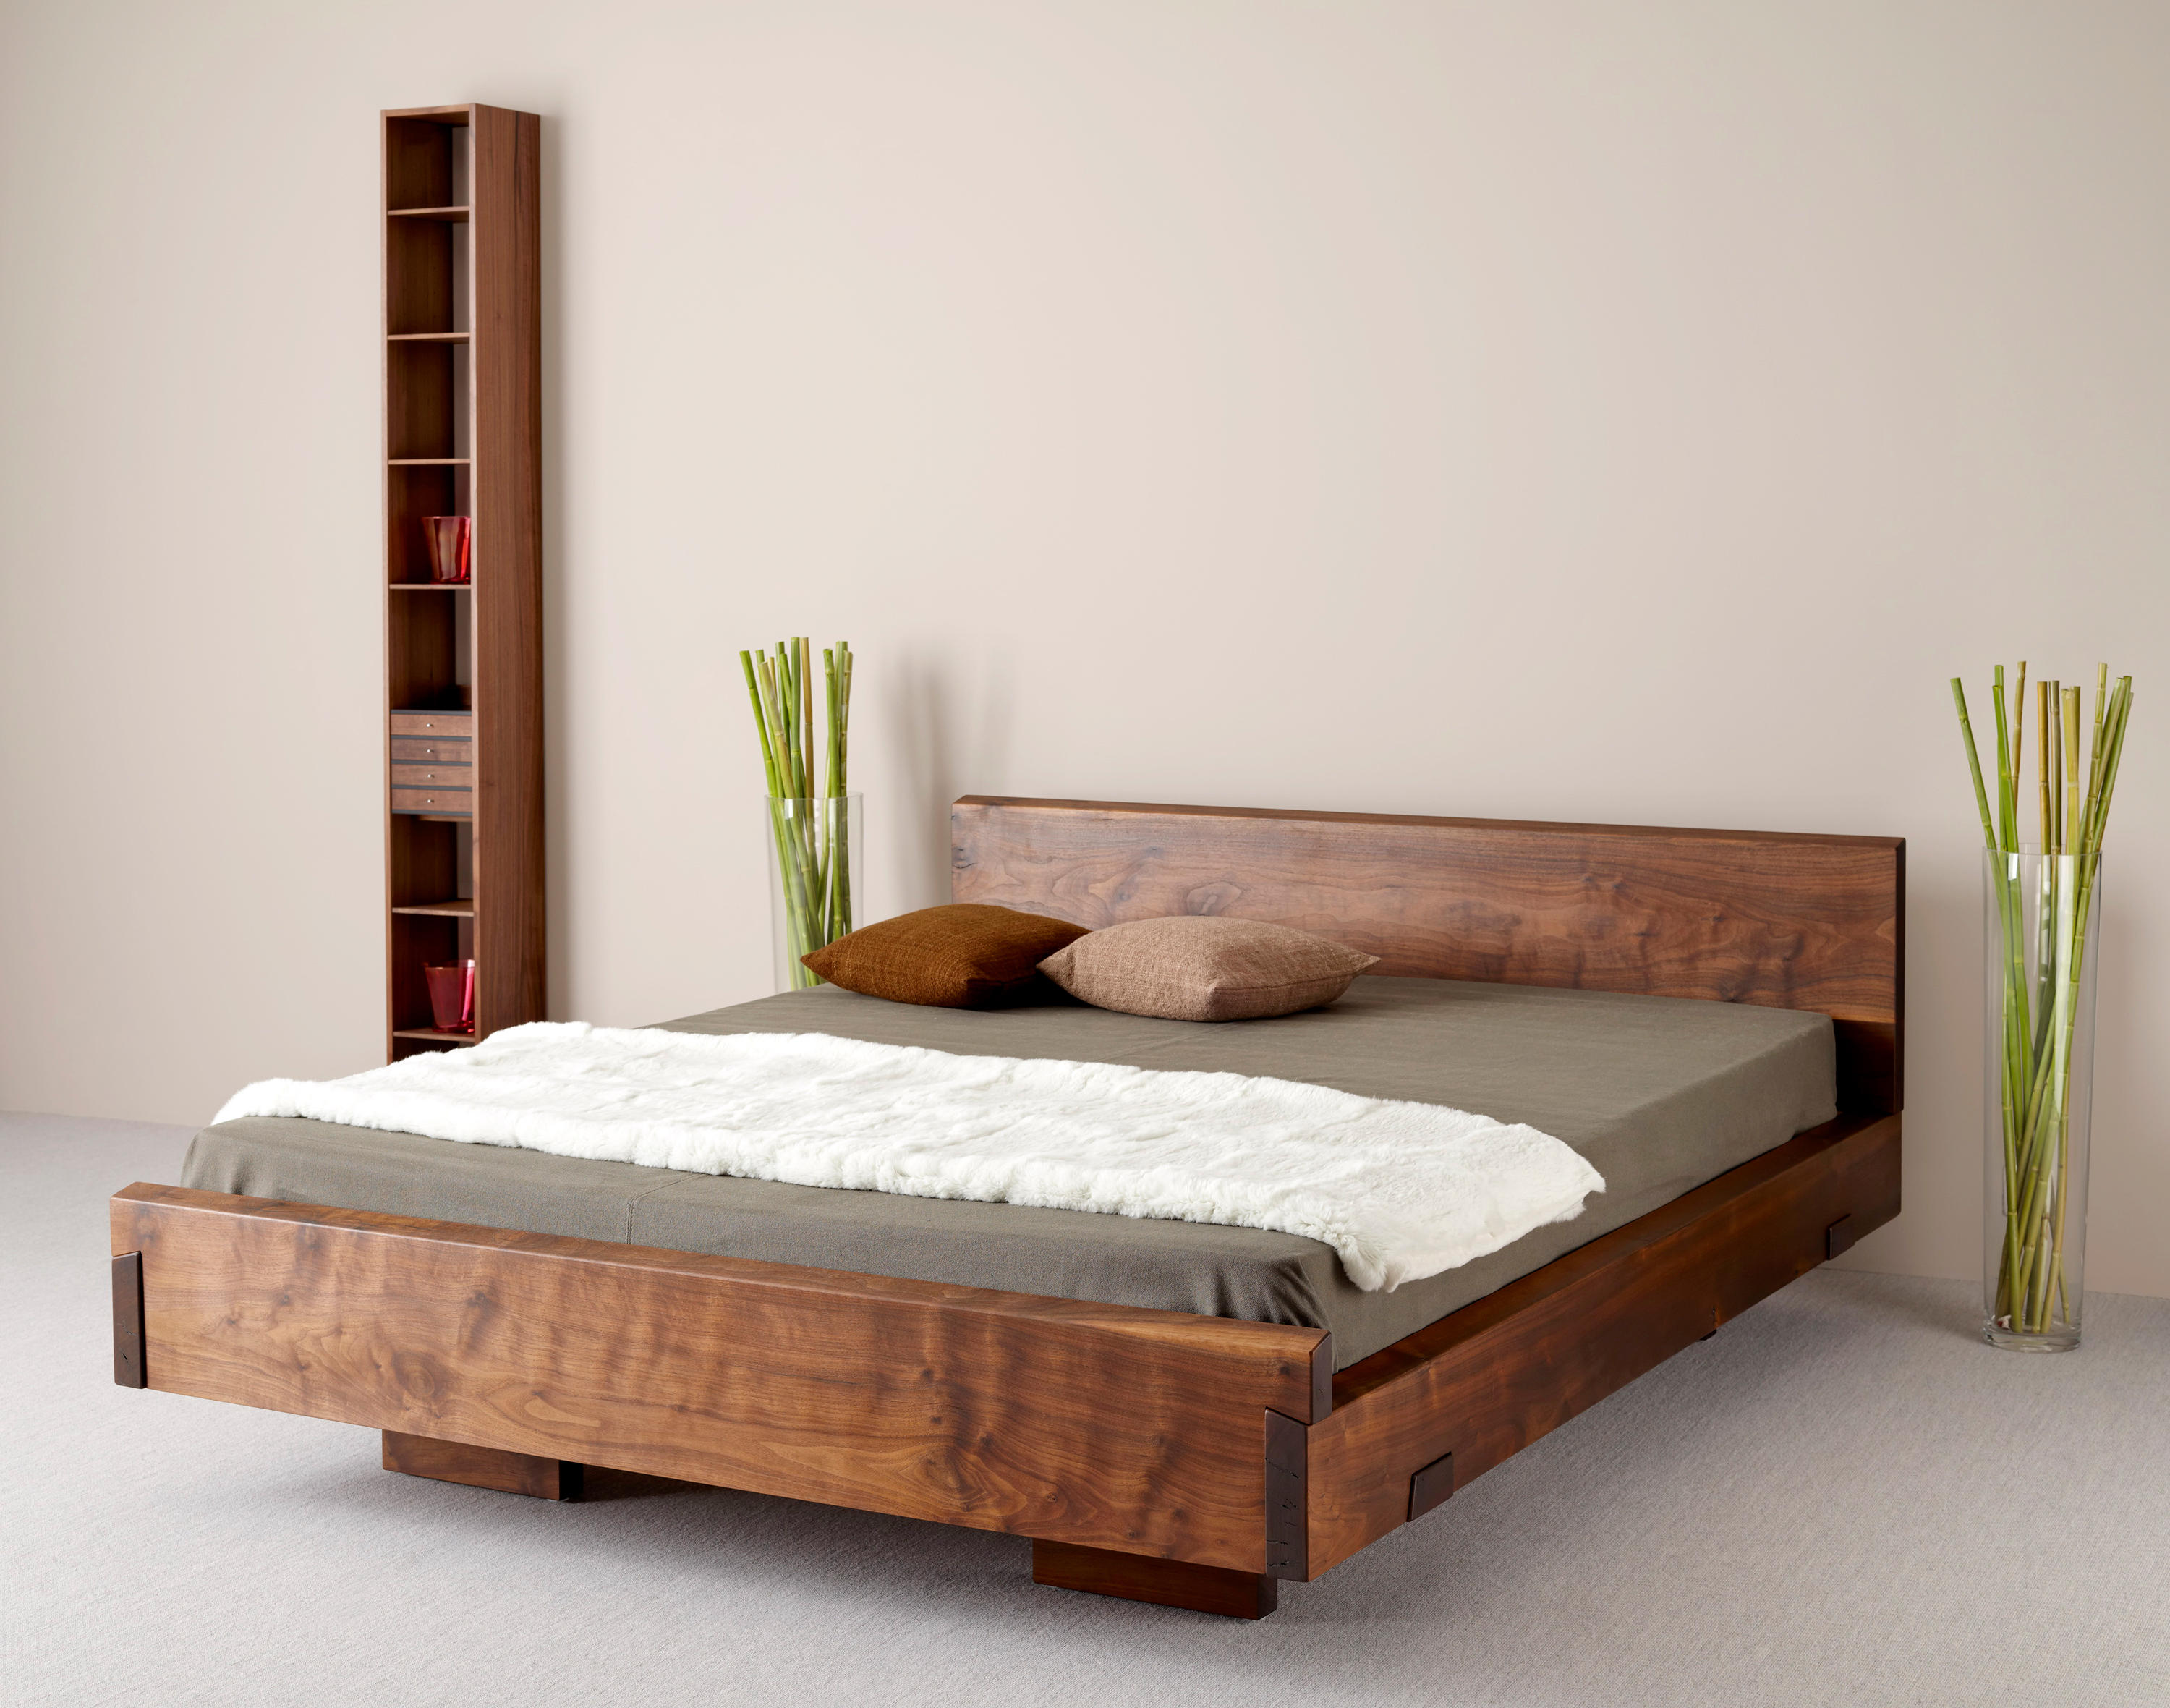 Ign timber night double beds from ign design Design of double bed